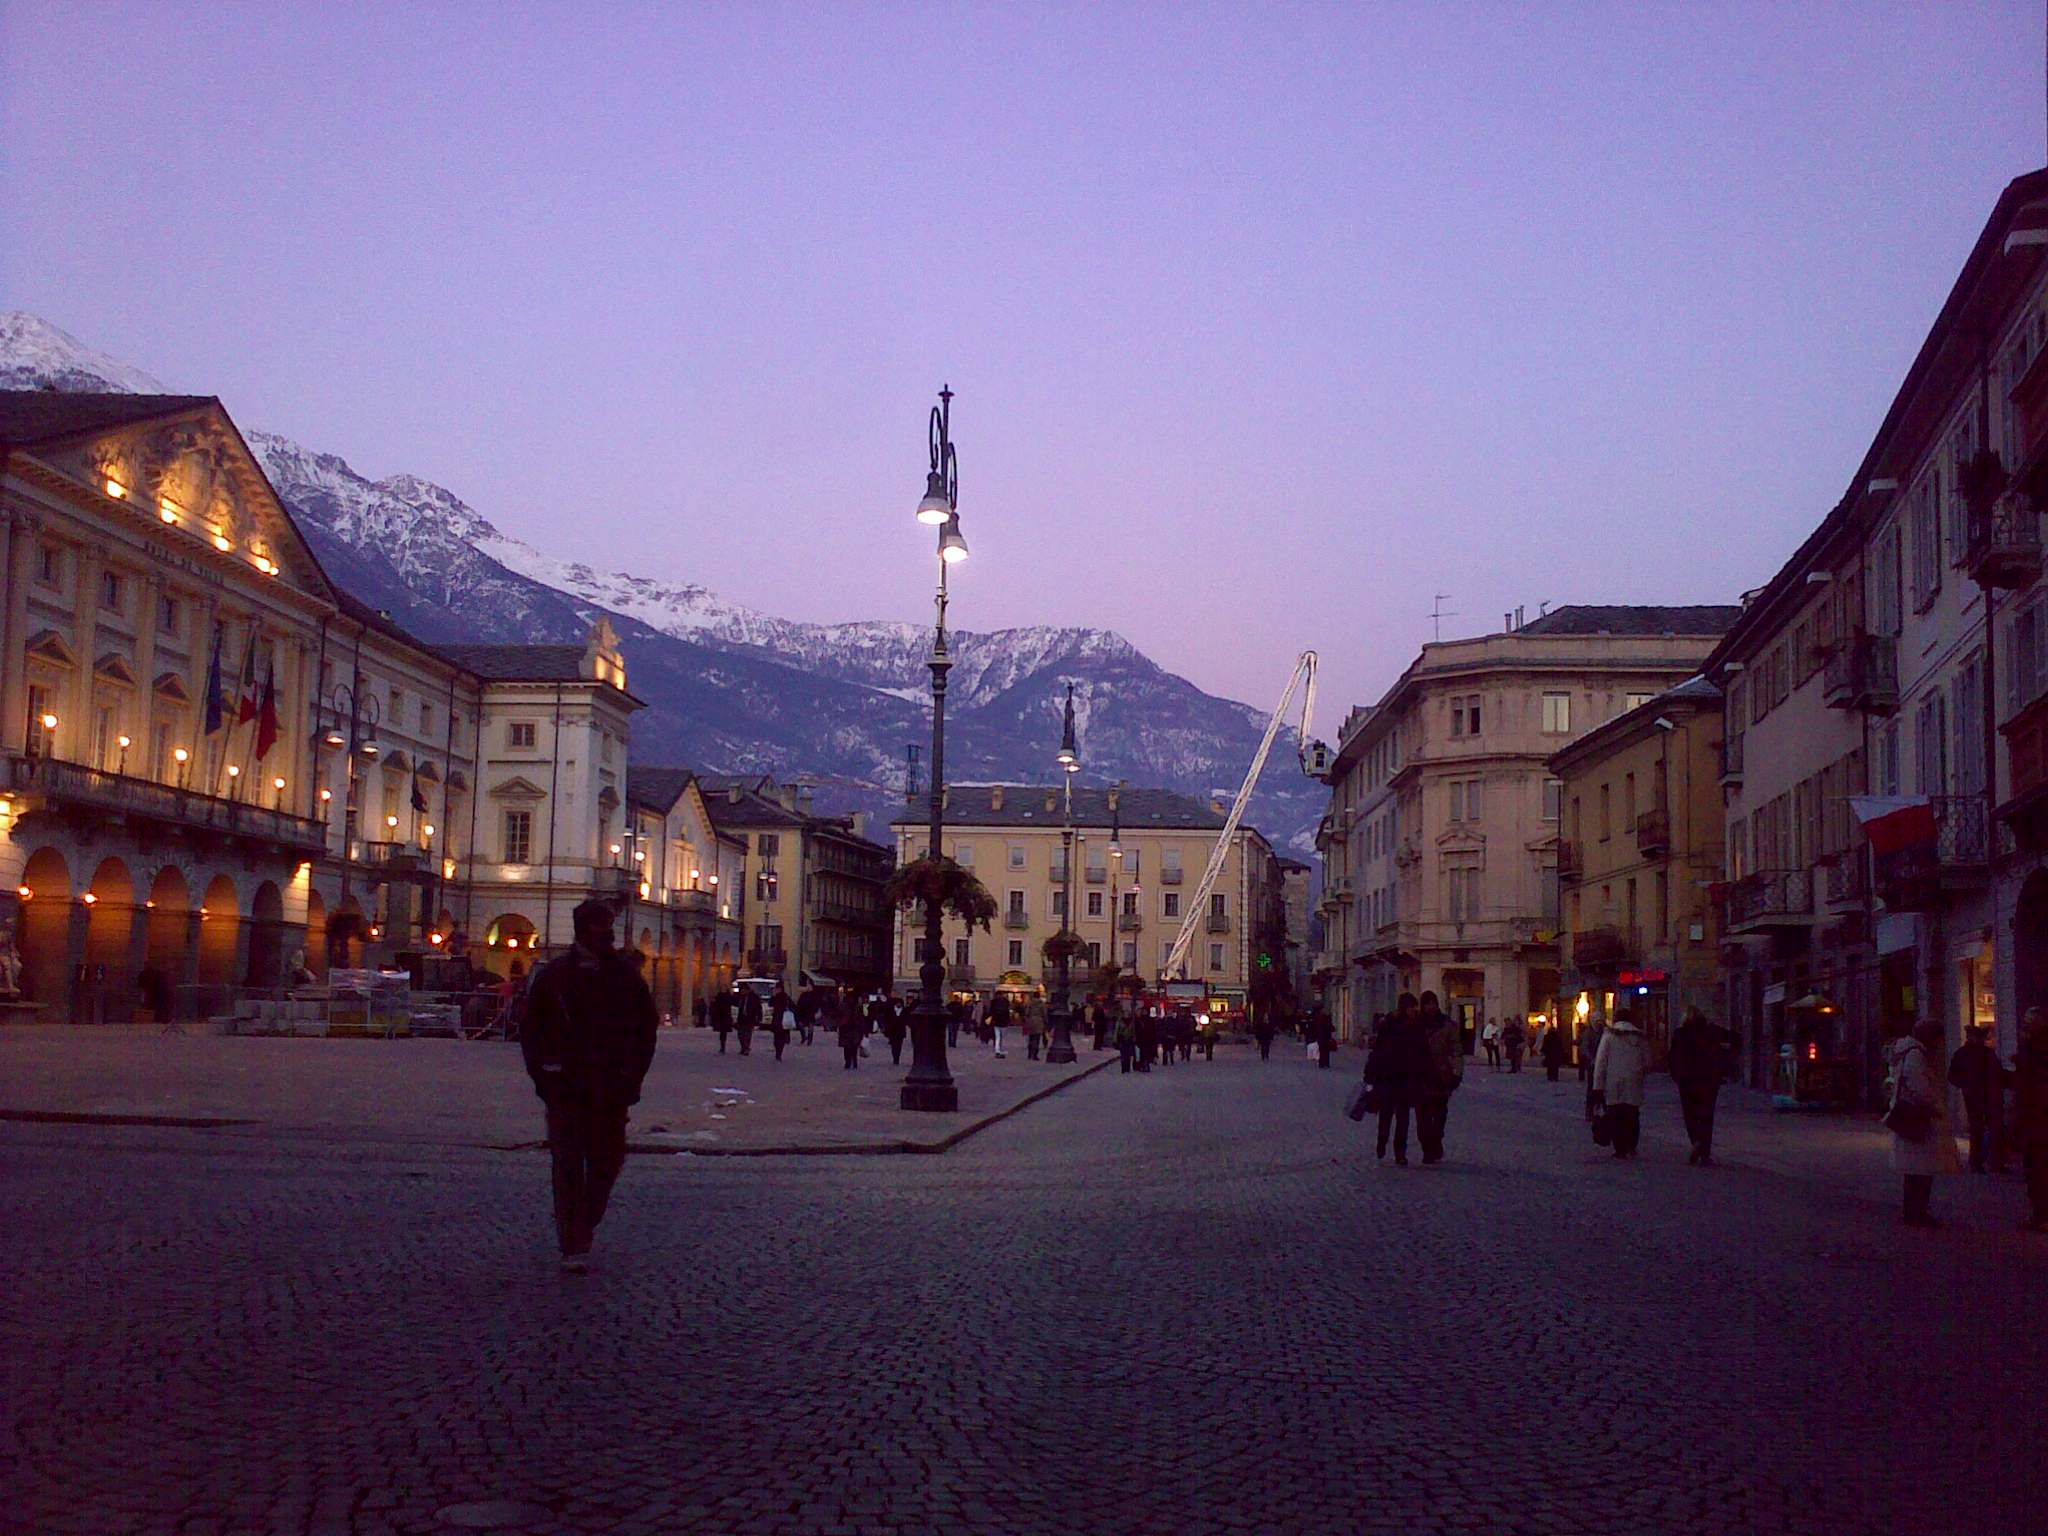 Late afternoon in AOSTA